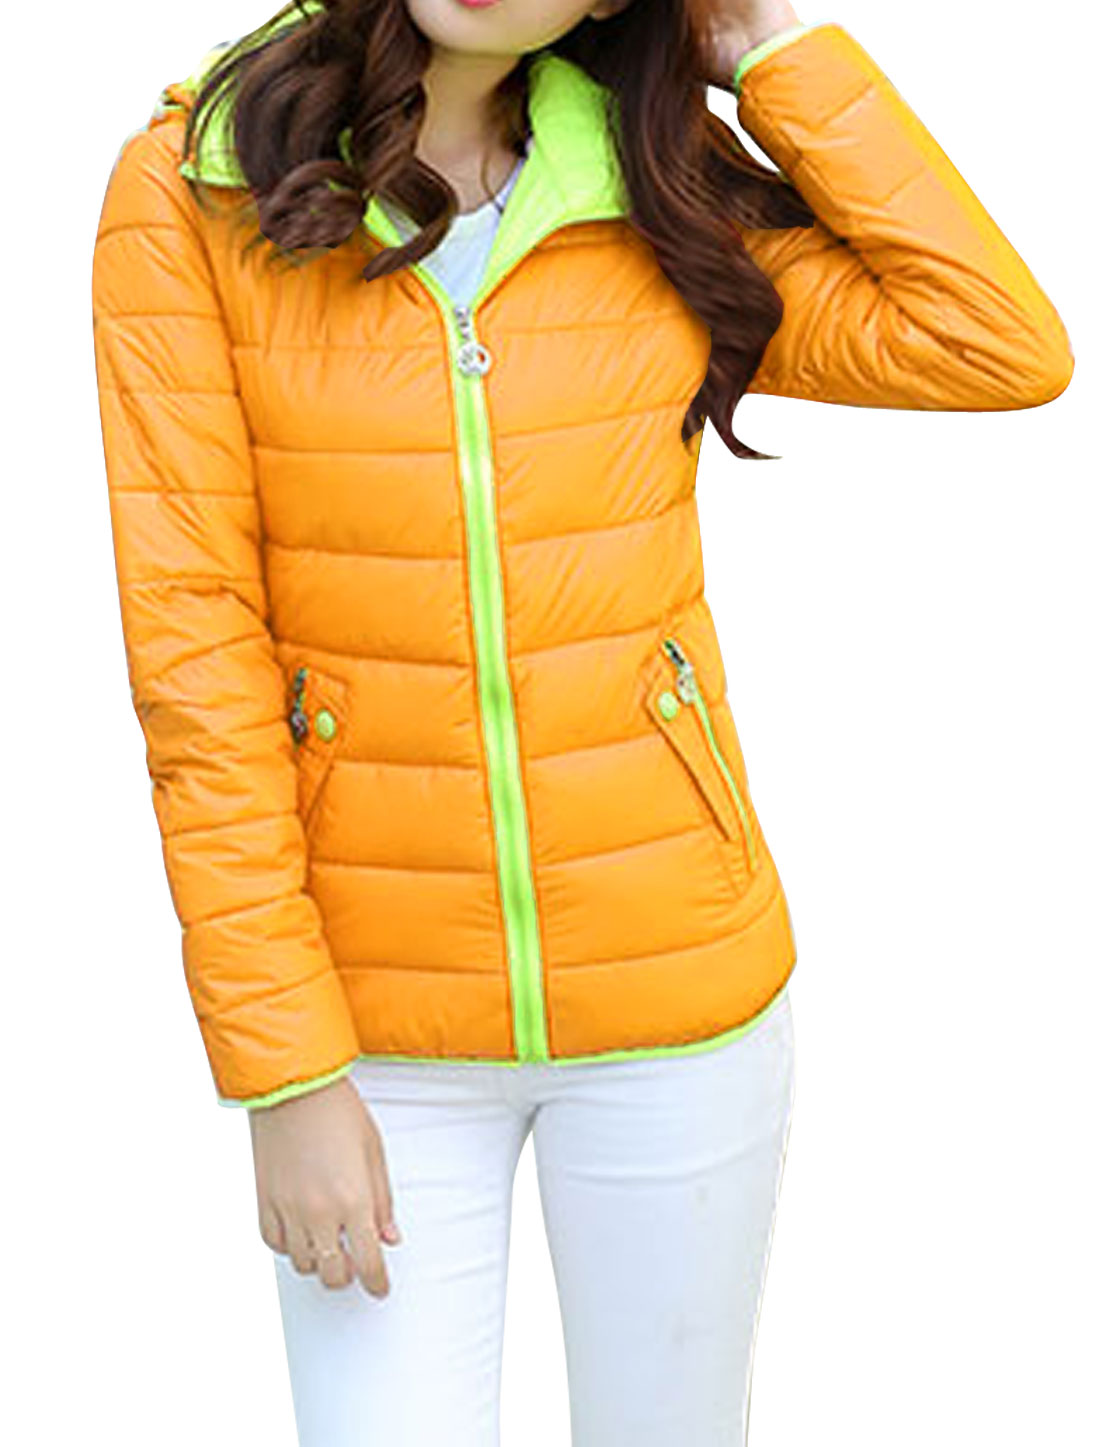 Lady Zipper Closure Front Buttons Decor Leisure Down Jacket Yellow S